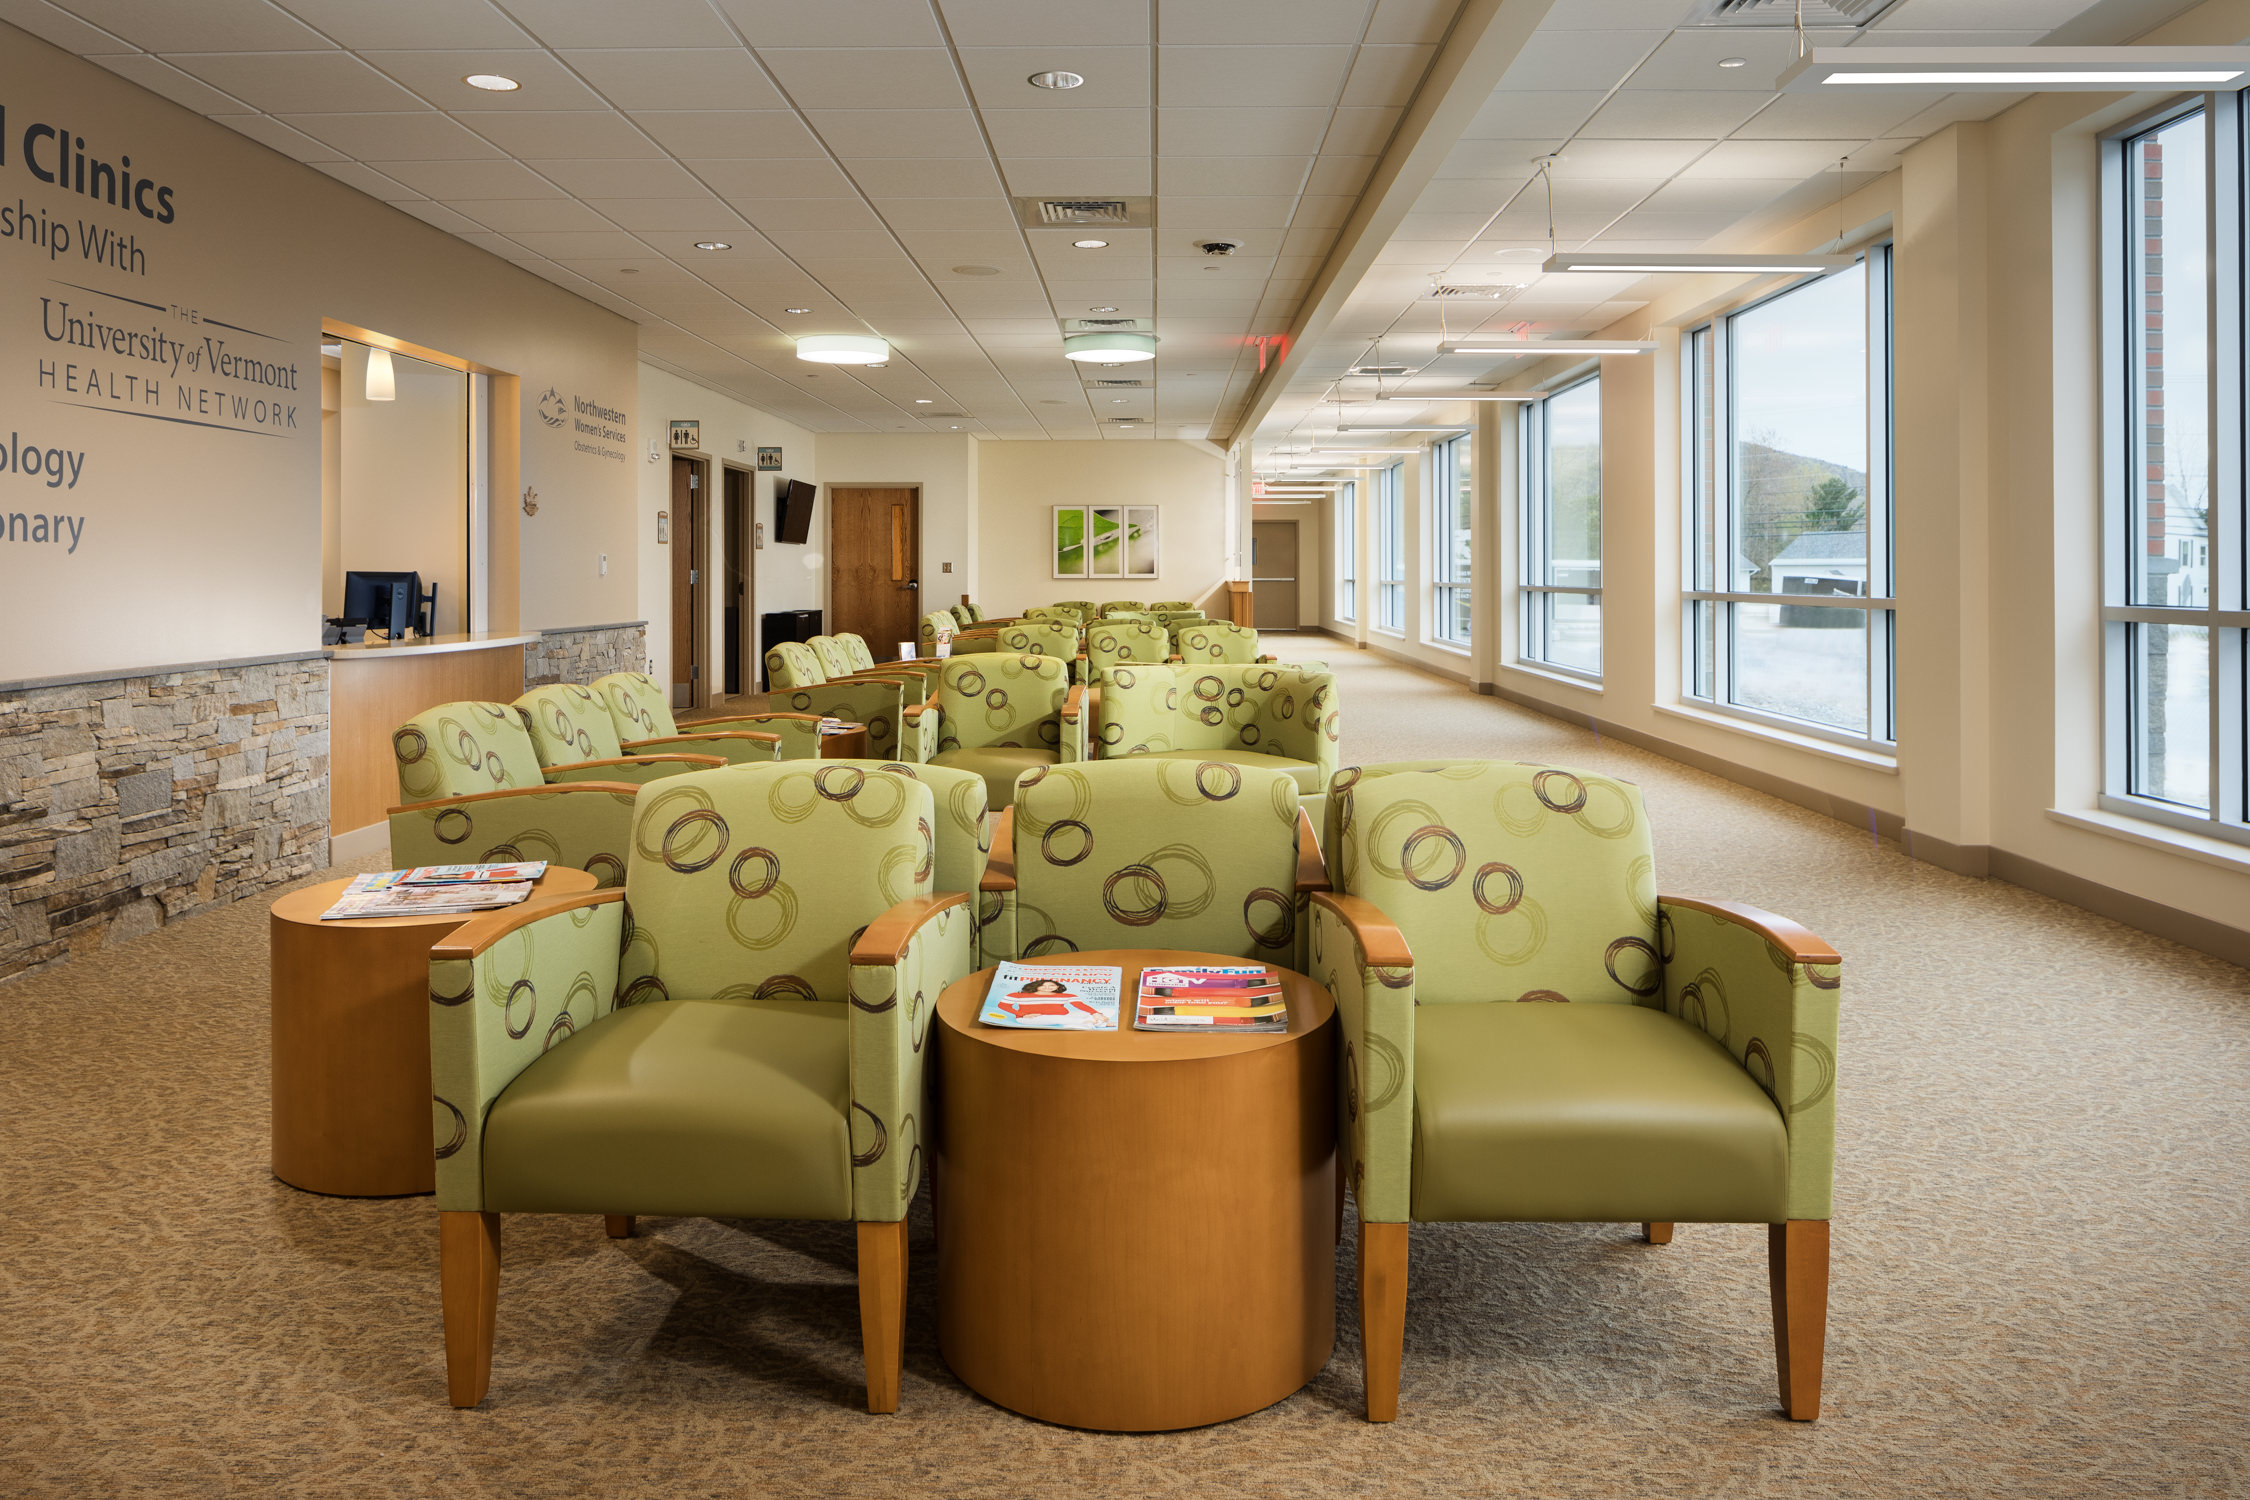 A view of the comfortable seating and expansive windows in the waiting area in Northwestern Medical Center's Clinics building in St. Albans by Vermont photographer Stina Booth